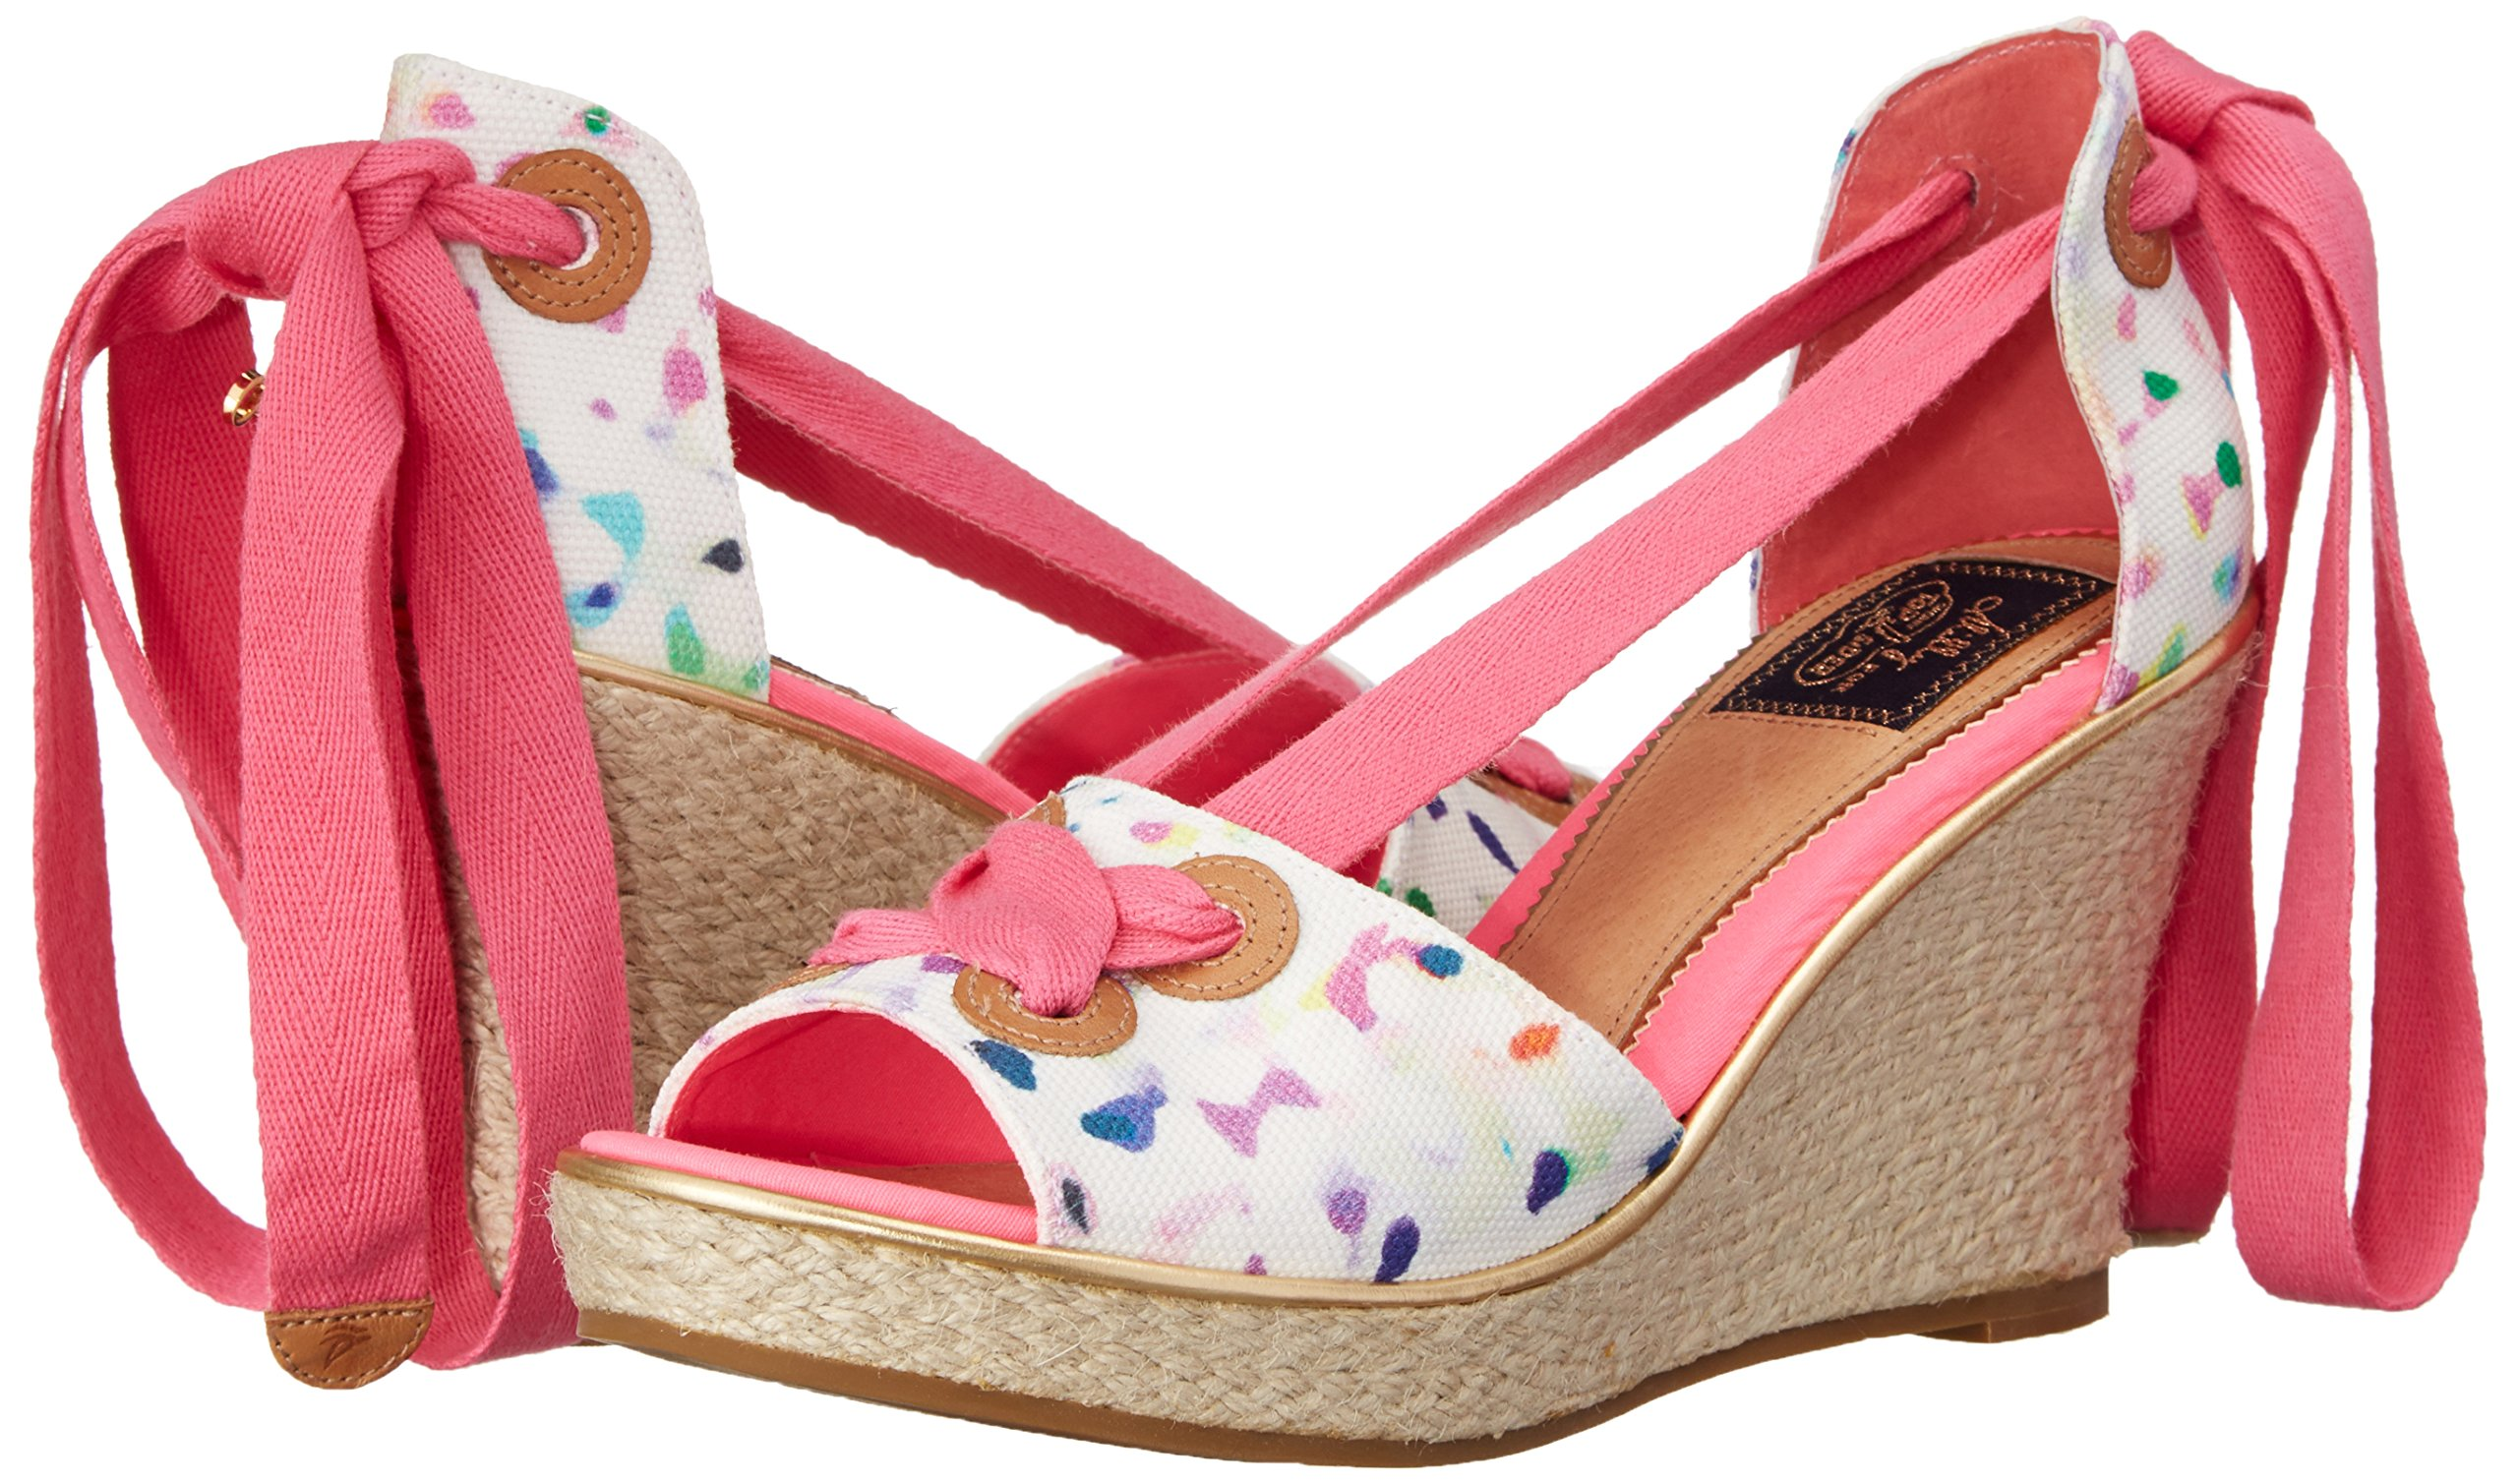 Sperry Top-Sider Women's Palm Beach Milly Confetti Print Wedge 8.5 M (B)